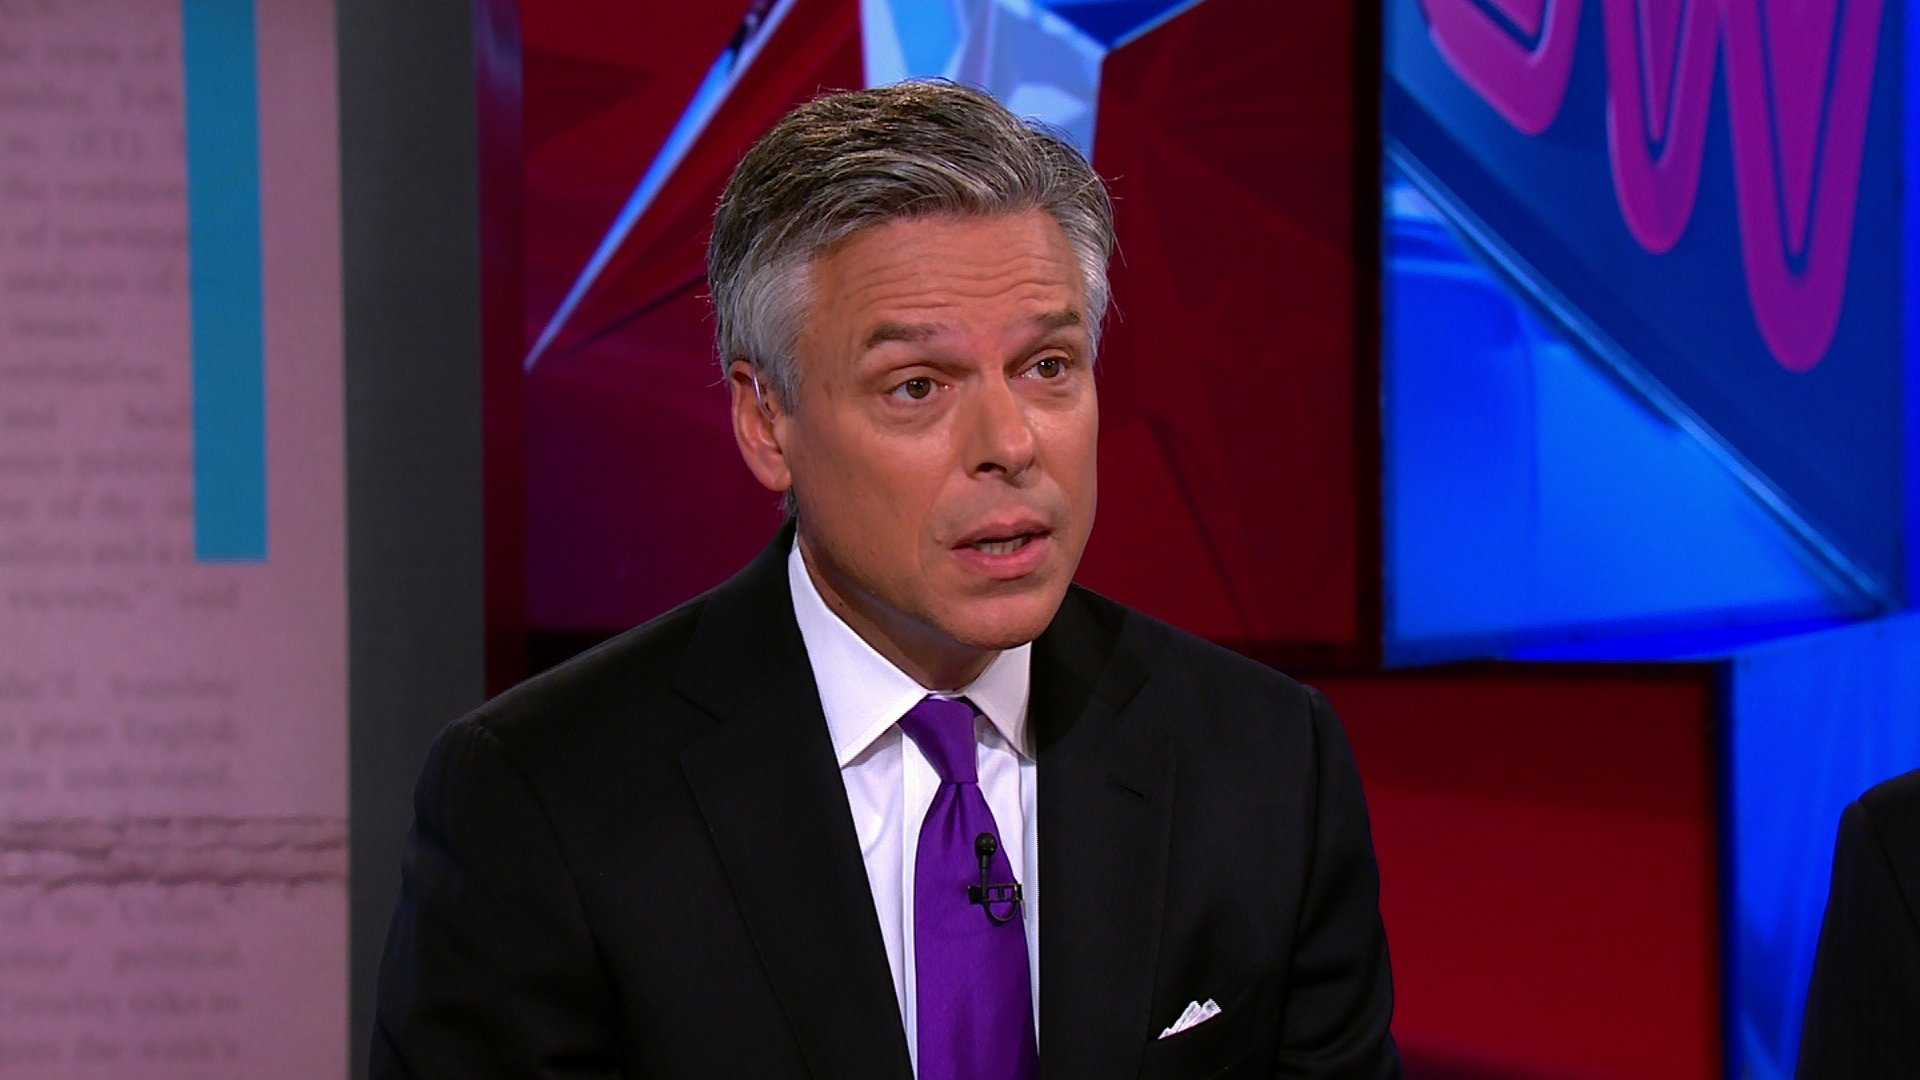 Huntsman accepts offer to be U.S.  ambassador to Russian Federation